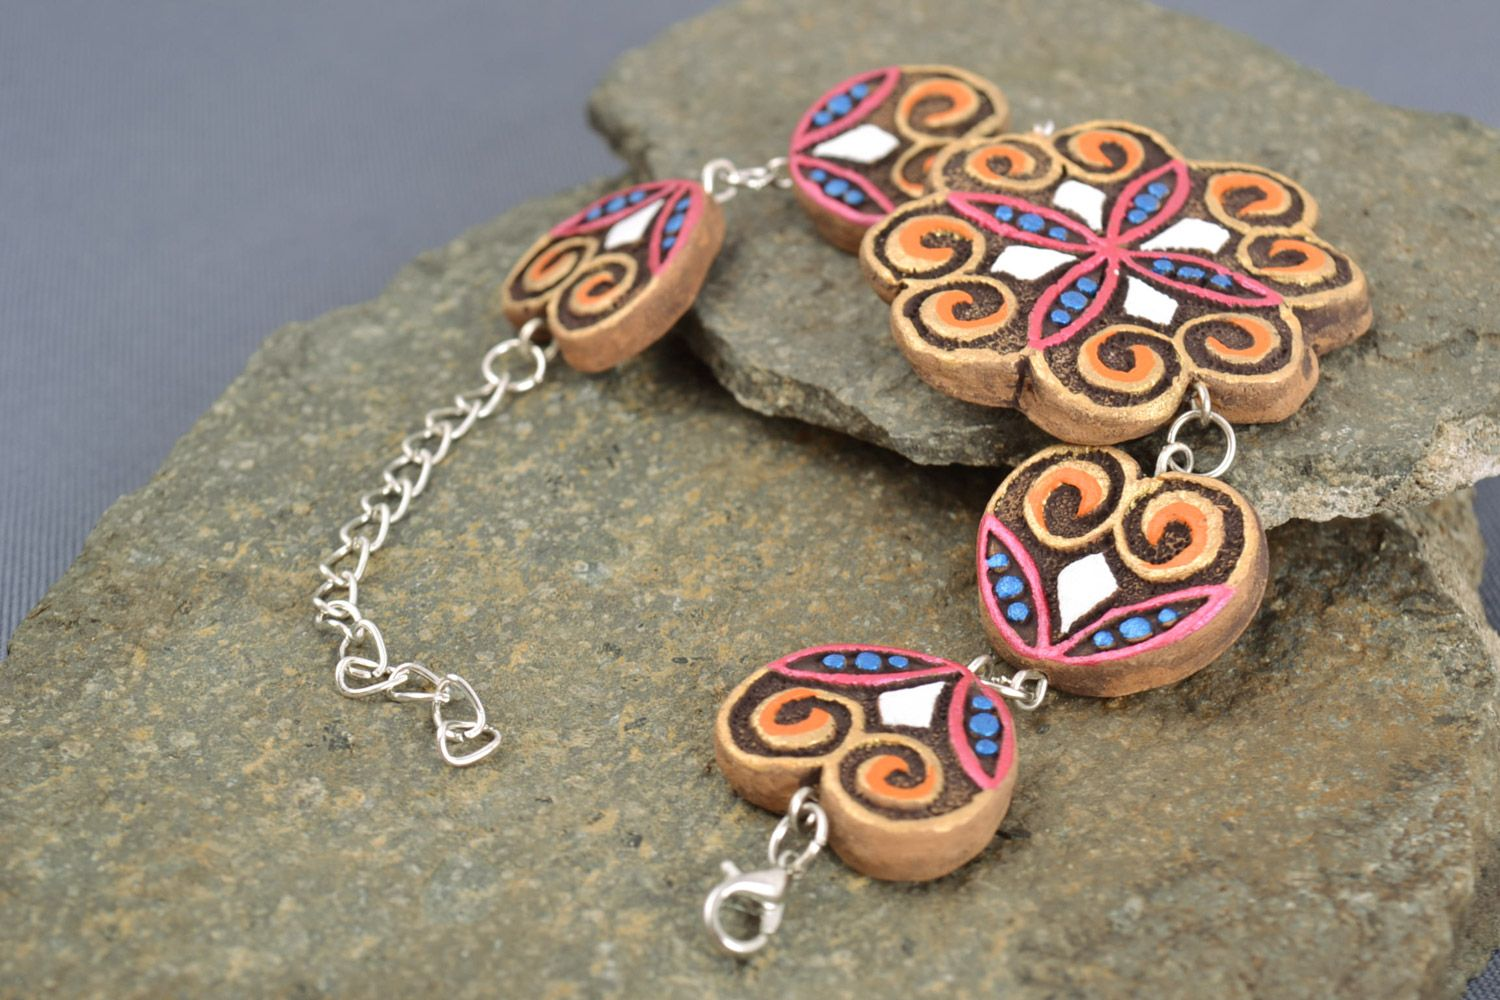 clay bracelets Handmade wrist bracelet with figured ceramic beads painted with ornaments - MADEheart.com